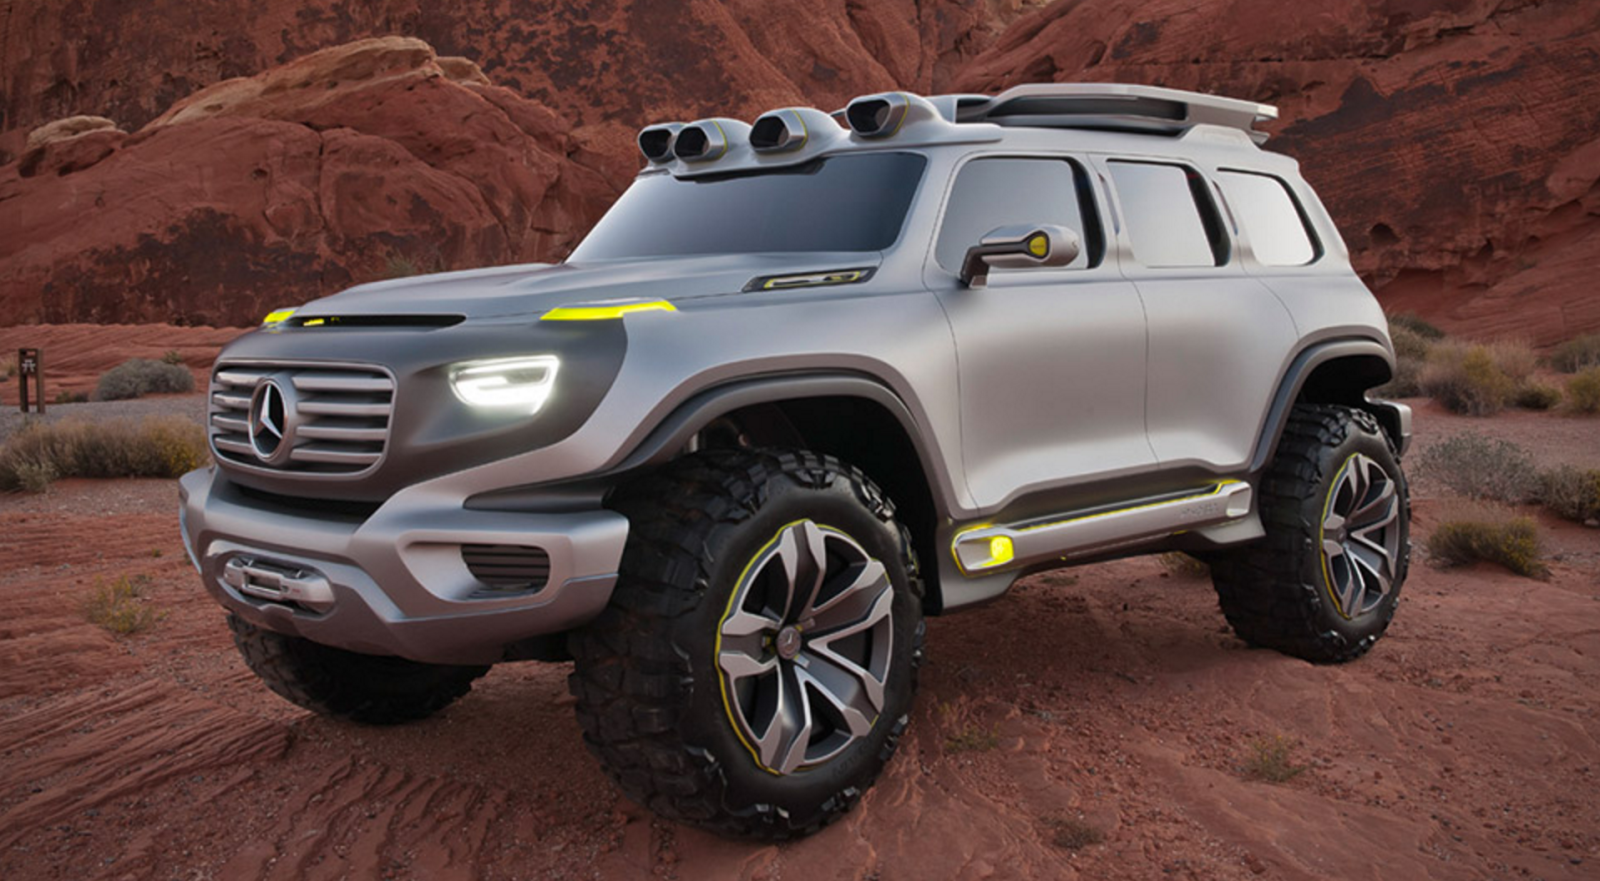 Mercedes Is Reportedly Working On a Baby G-Wagen